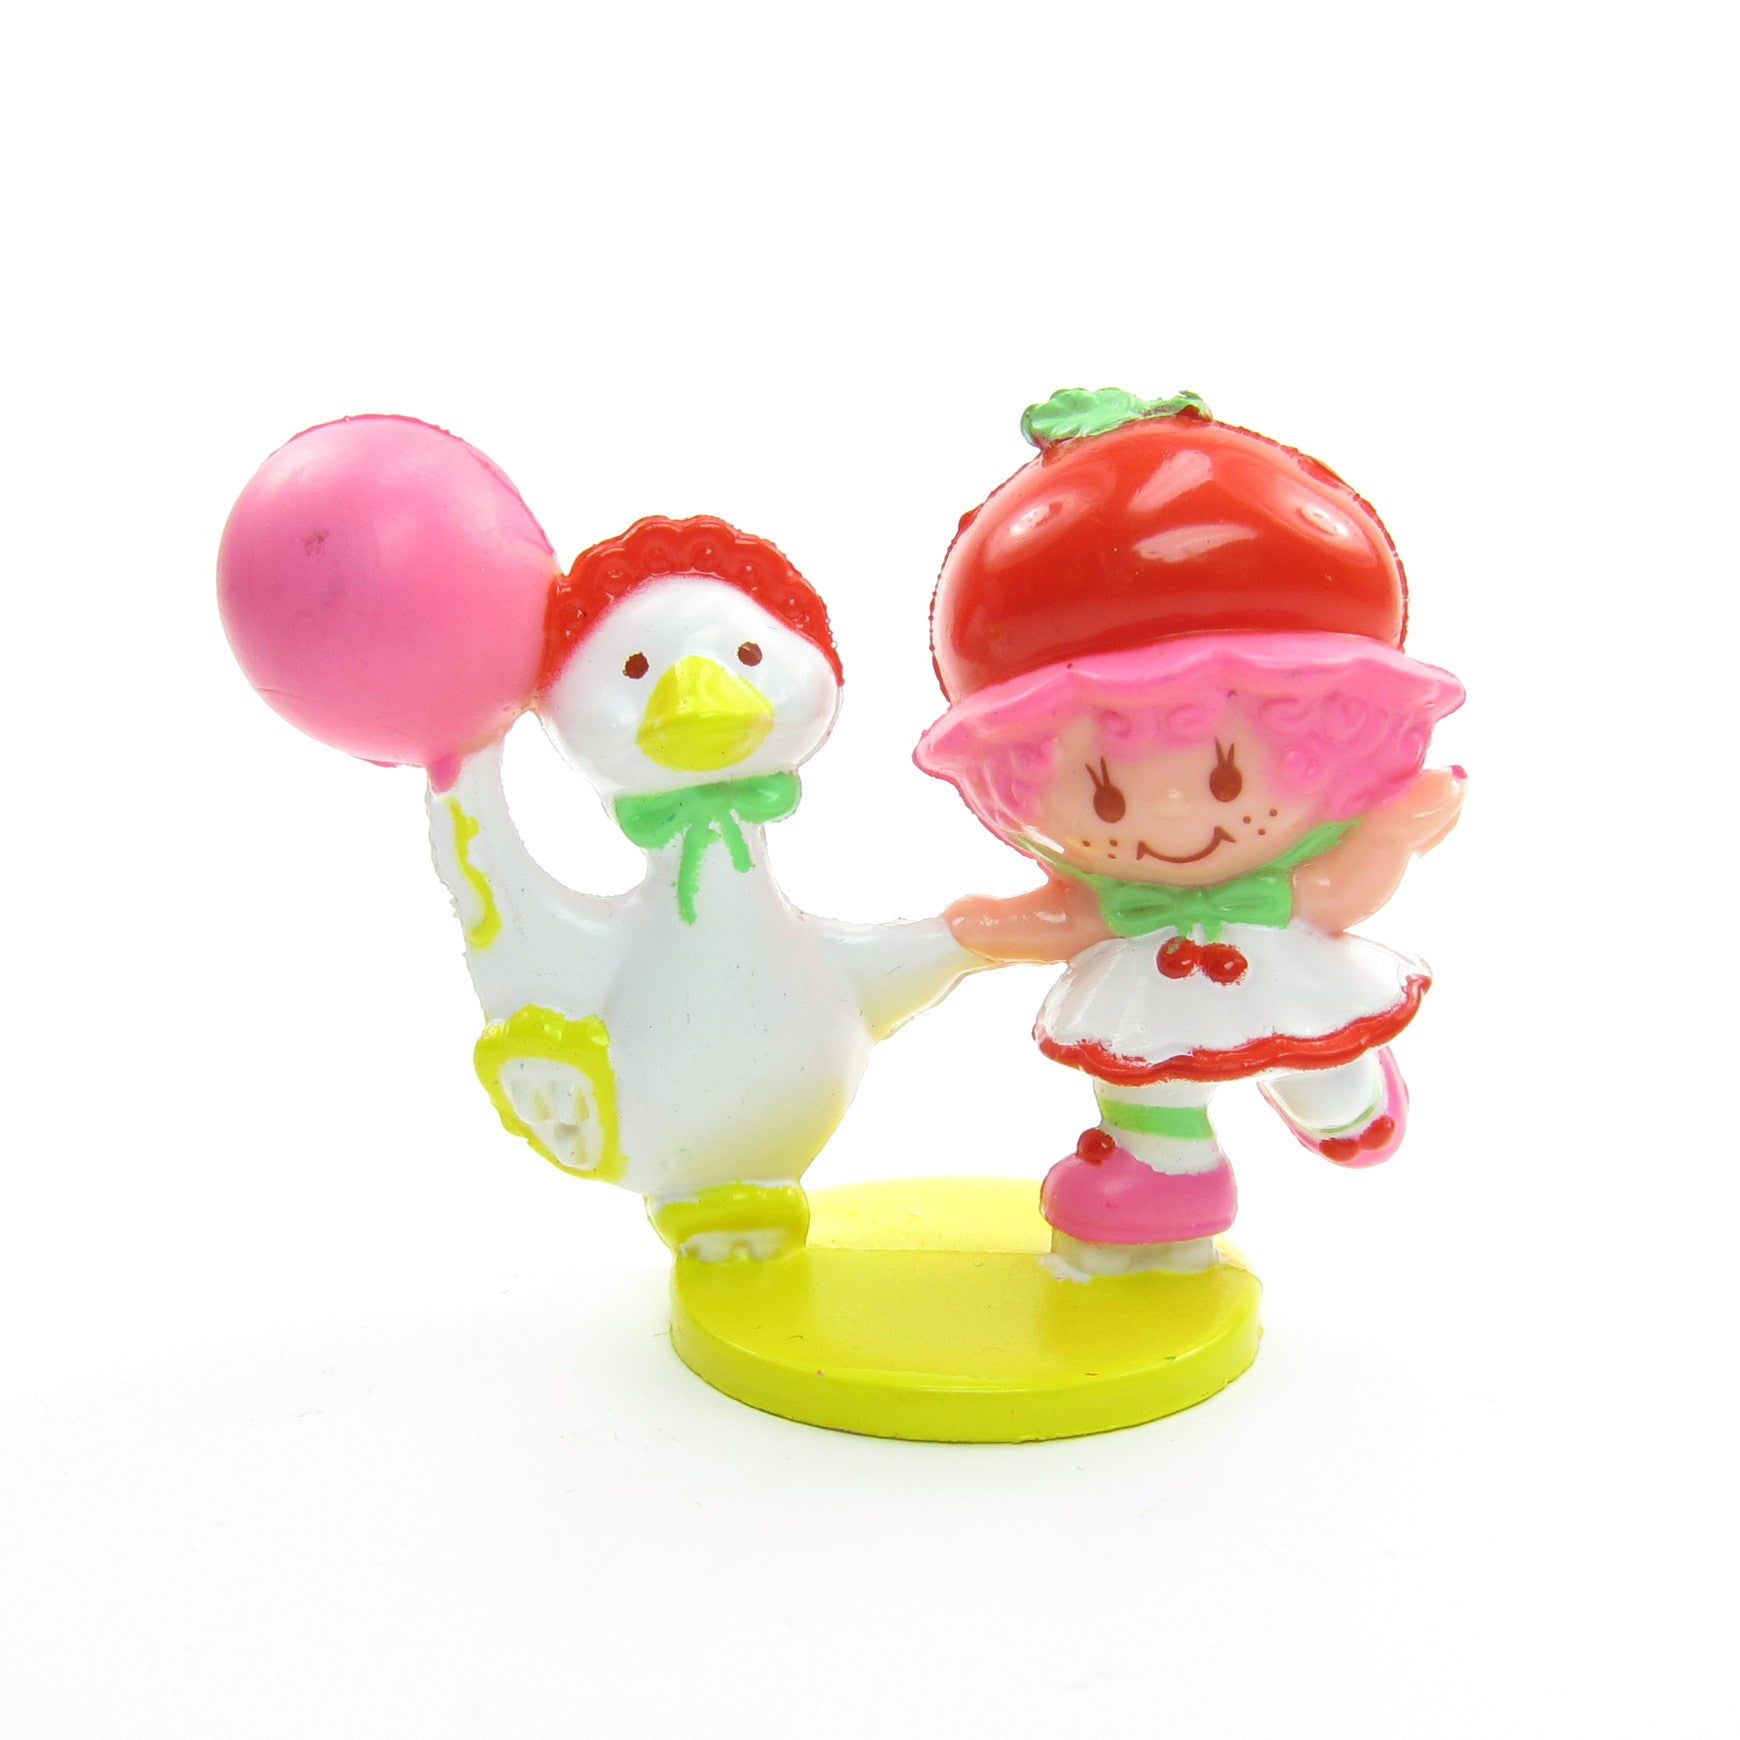 Cherry Cuddler and Gooseberry roller skating figurine